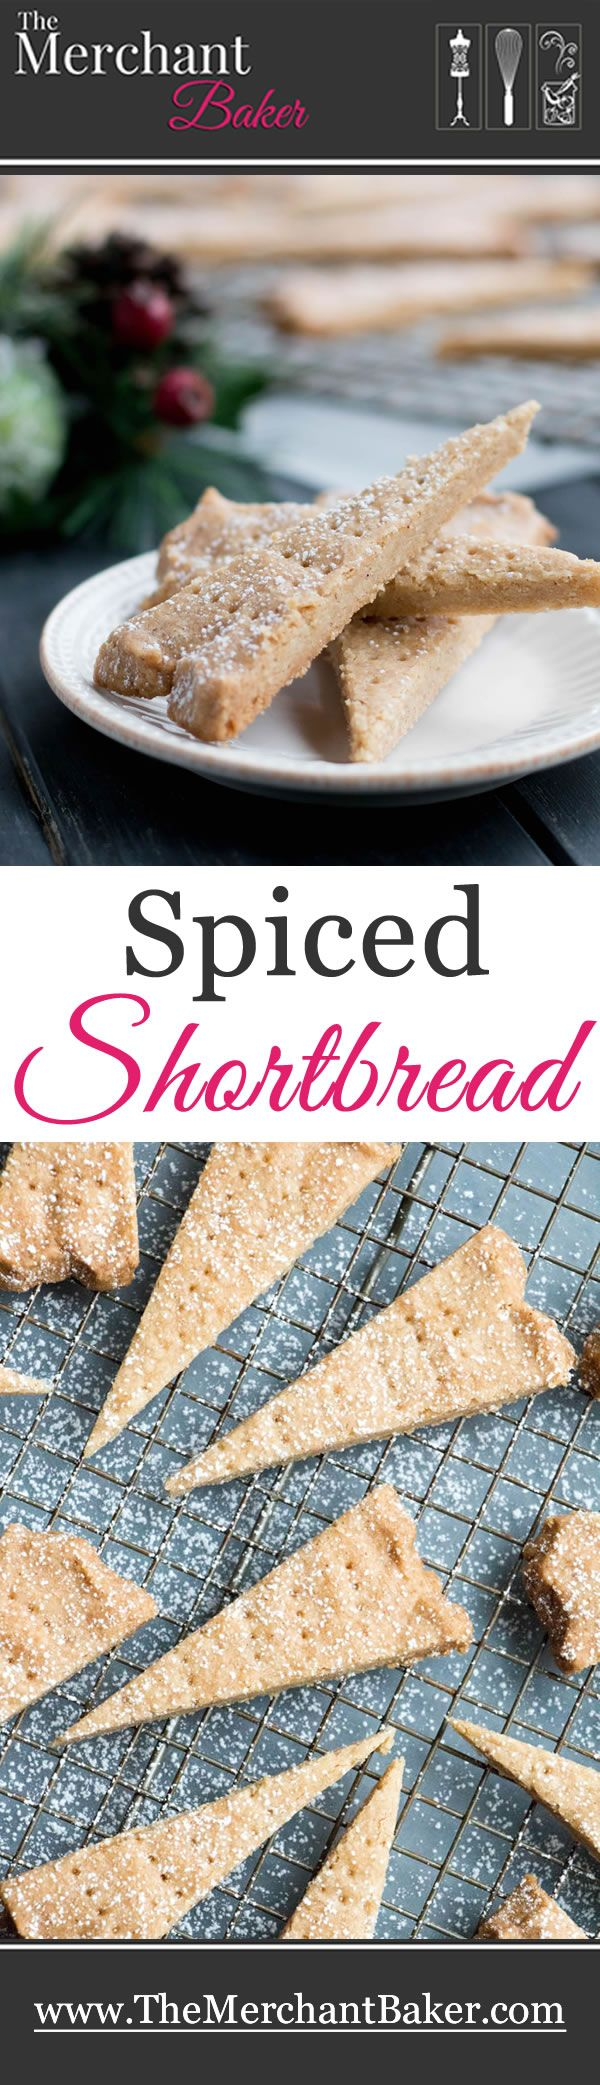 Spiced Shortbread mixes up in one bowl and bakes up to a lovely buttery, crisp but tender cookie that has the added warmth of cinnamon, ginger and cloves.